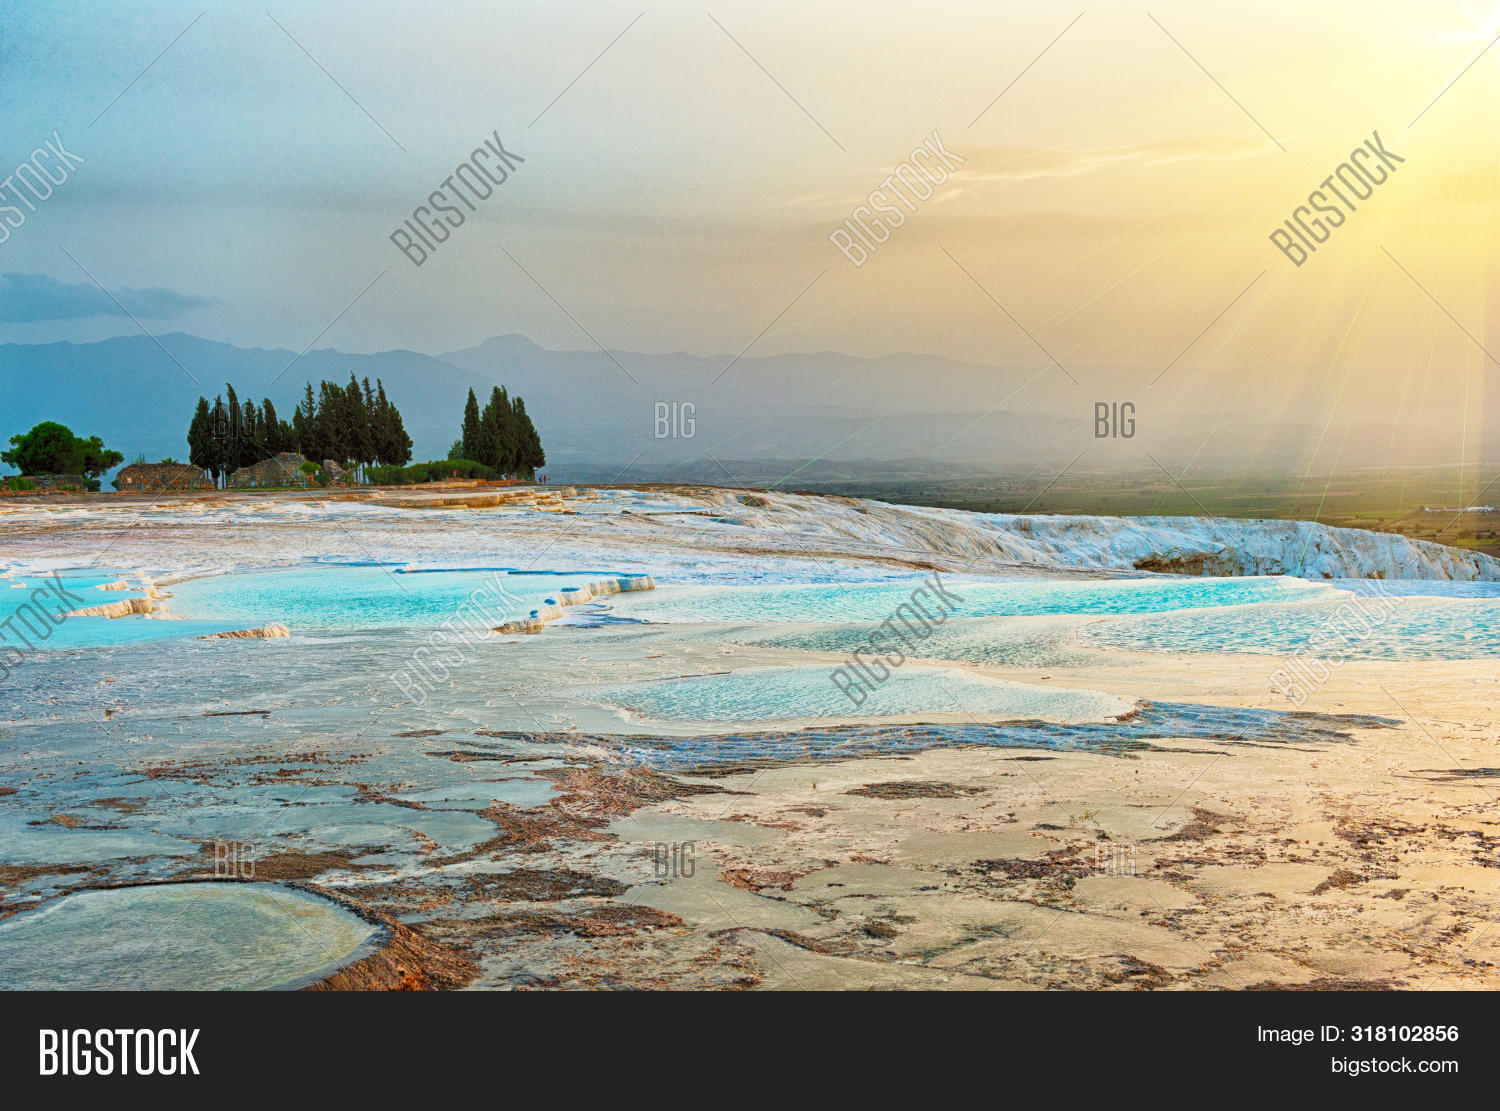 ancient,attraction,basin,bath,beautiful,beauty,blue,crystalline,destinations,dramatic,dusk,famous,flowing,formation,geological,geology,hierapolis,landmark,landscape,mineral,mountain,natural,nature,outdoor,pamukkale,pool,pools,ray,reflection,reserve,rock,scenic,sightseeing,sky,sun,sunrise,sunset,terrace,thermal,tourism,tourist,travel,travertine,turkey,turkish,turquoise,vivid,water,white,yellow